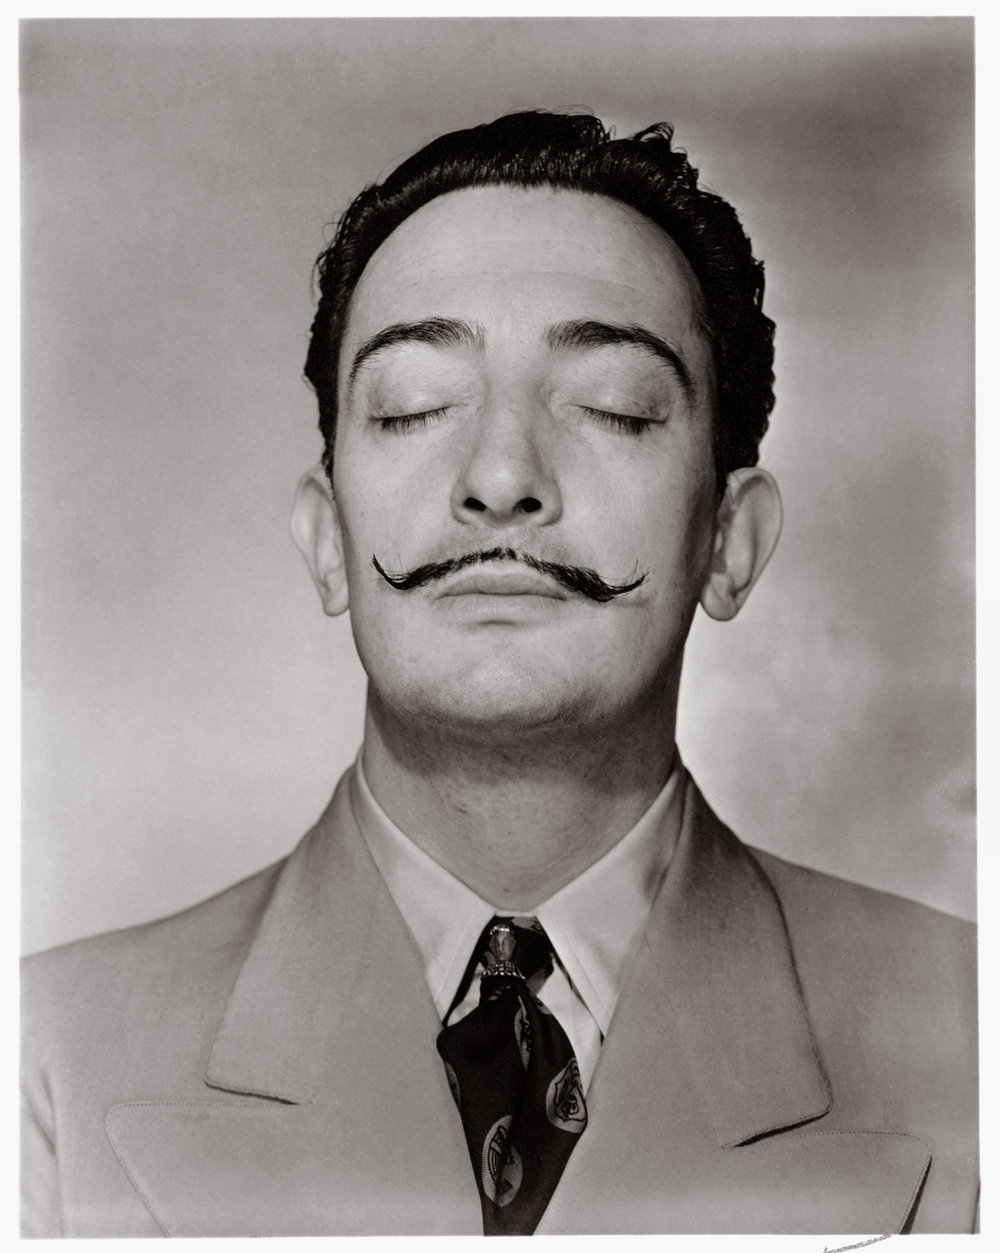 Salvador Dali with his trademark 'Dali' mustache.